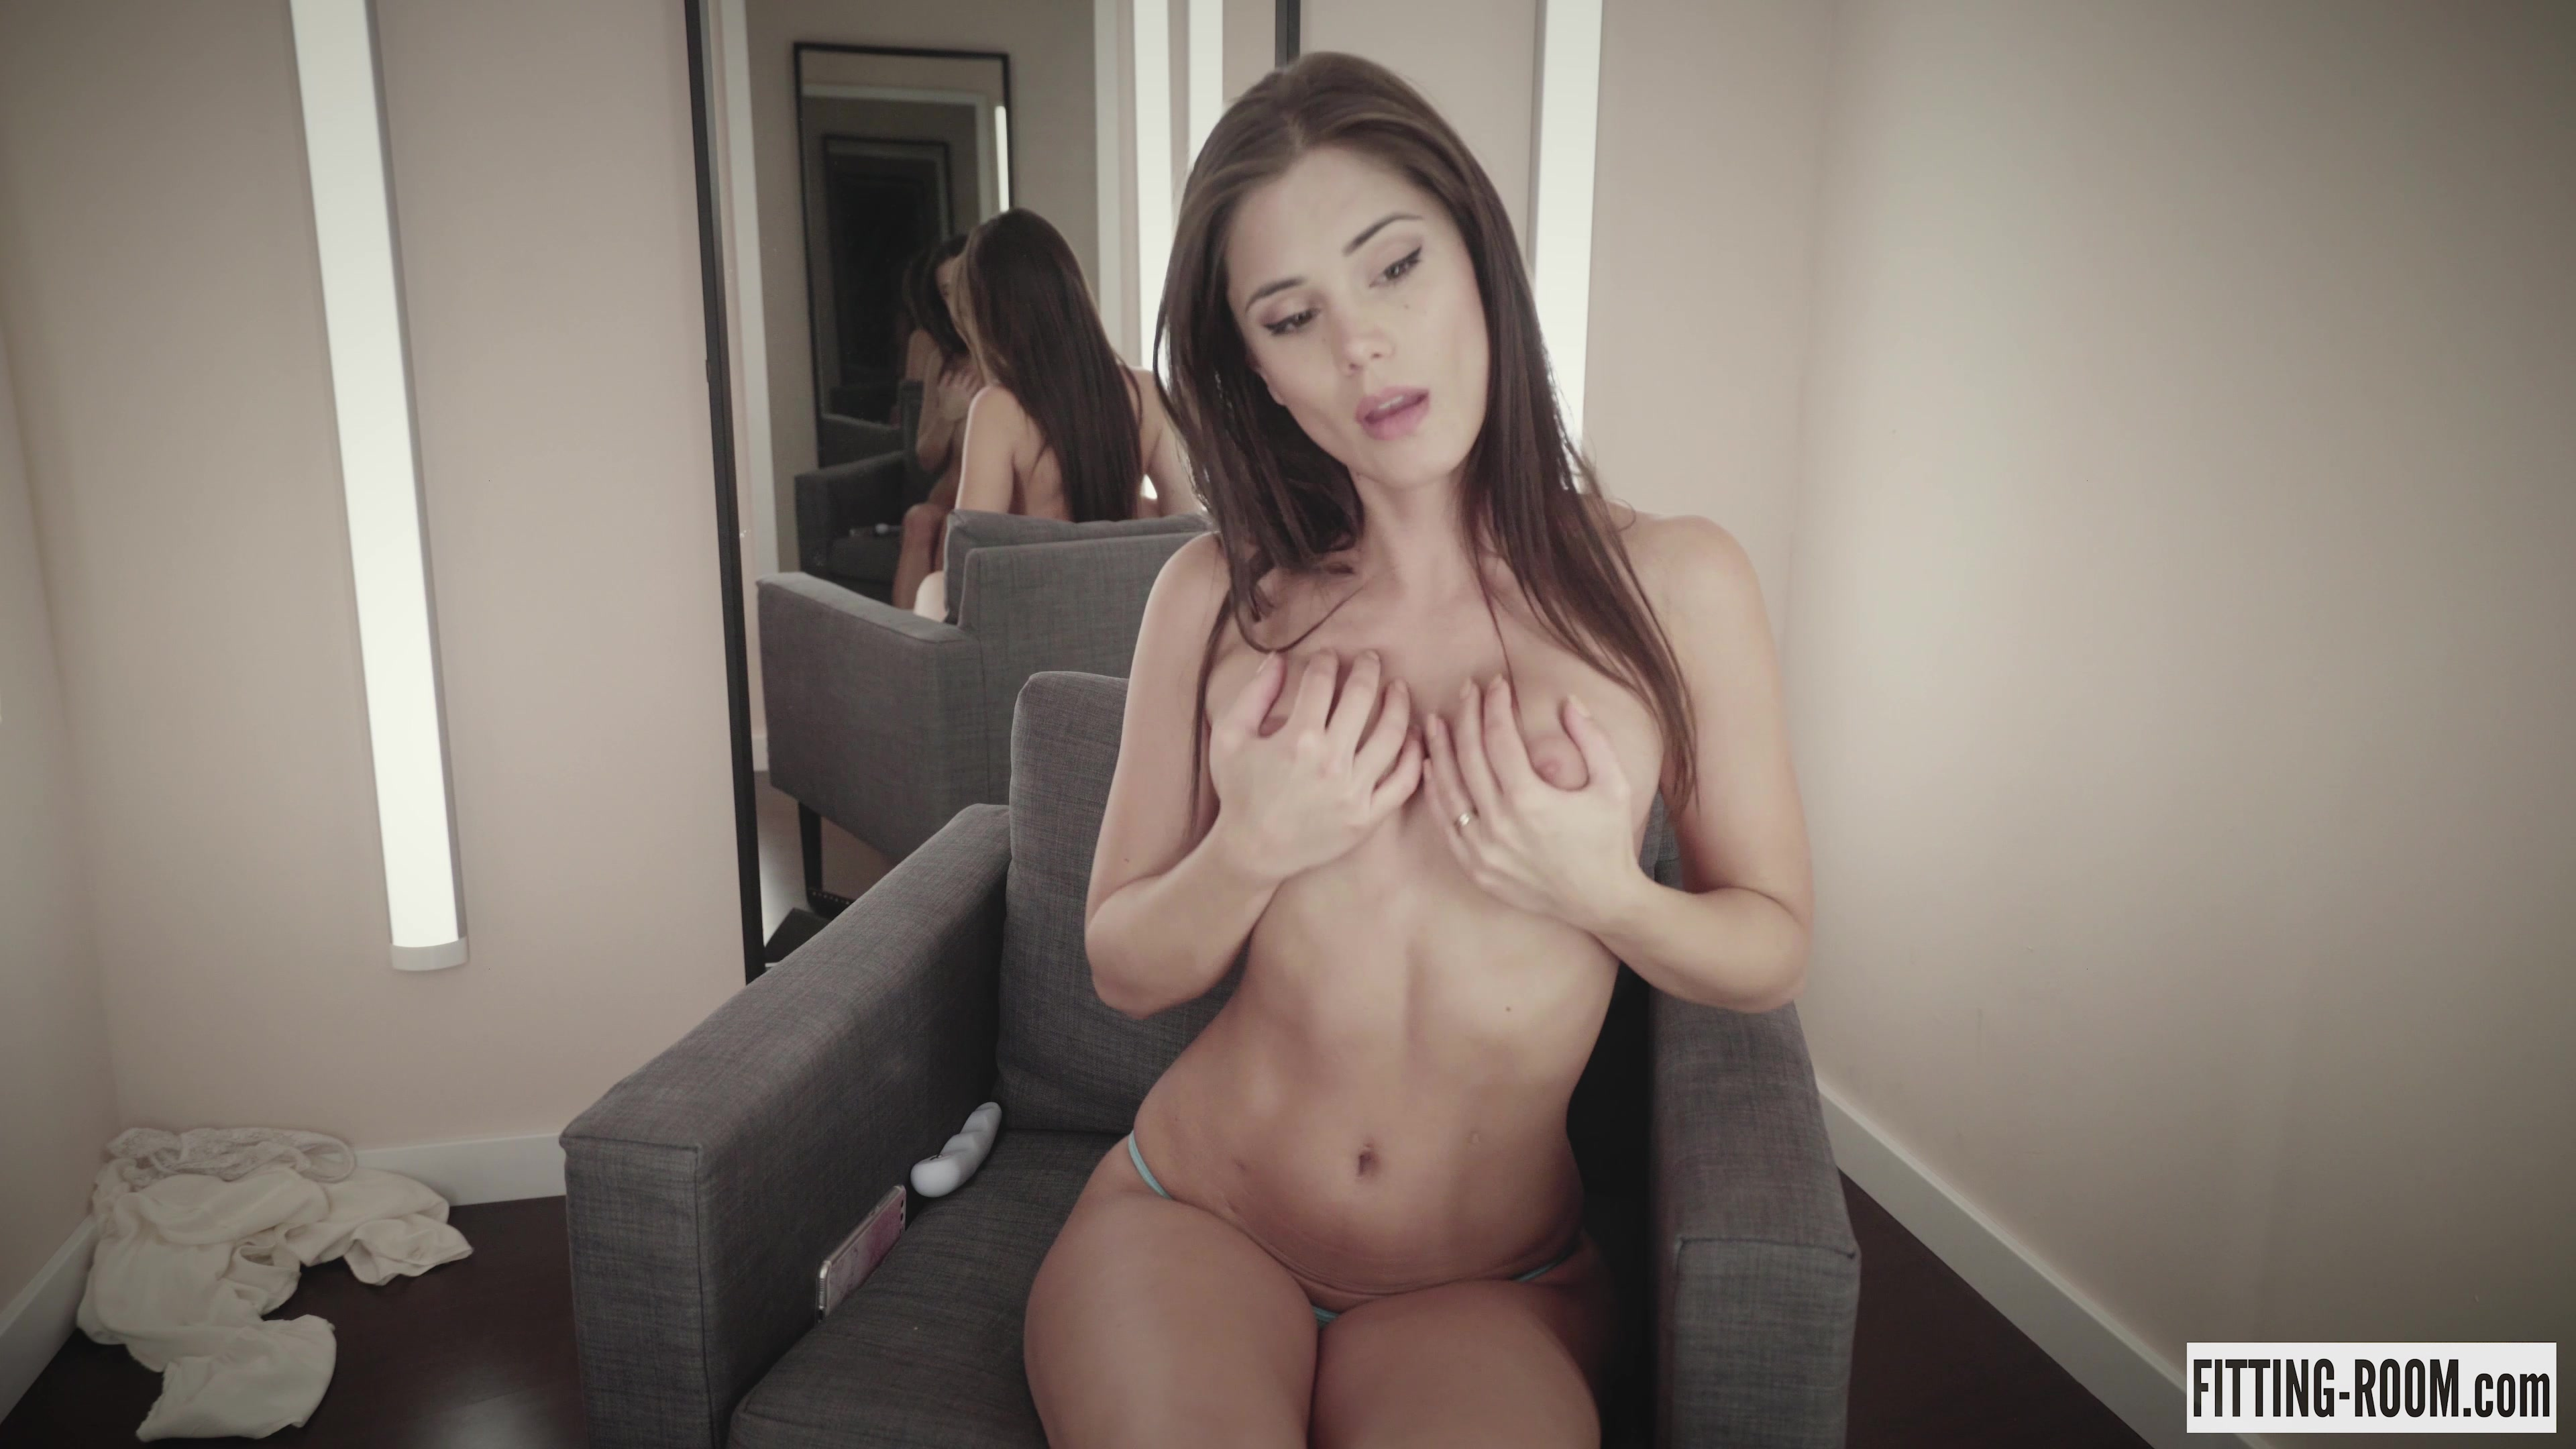 Little Caprice | Blue Thong And Blue Toy